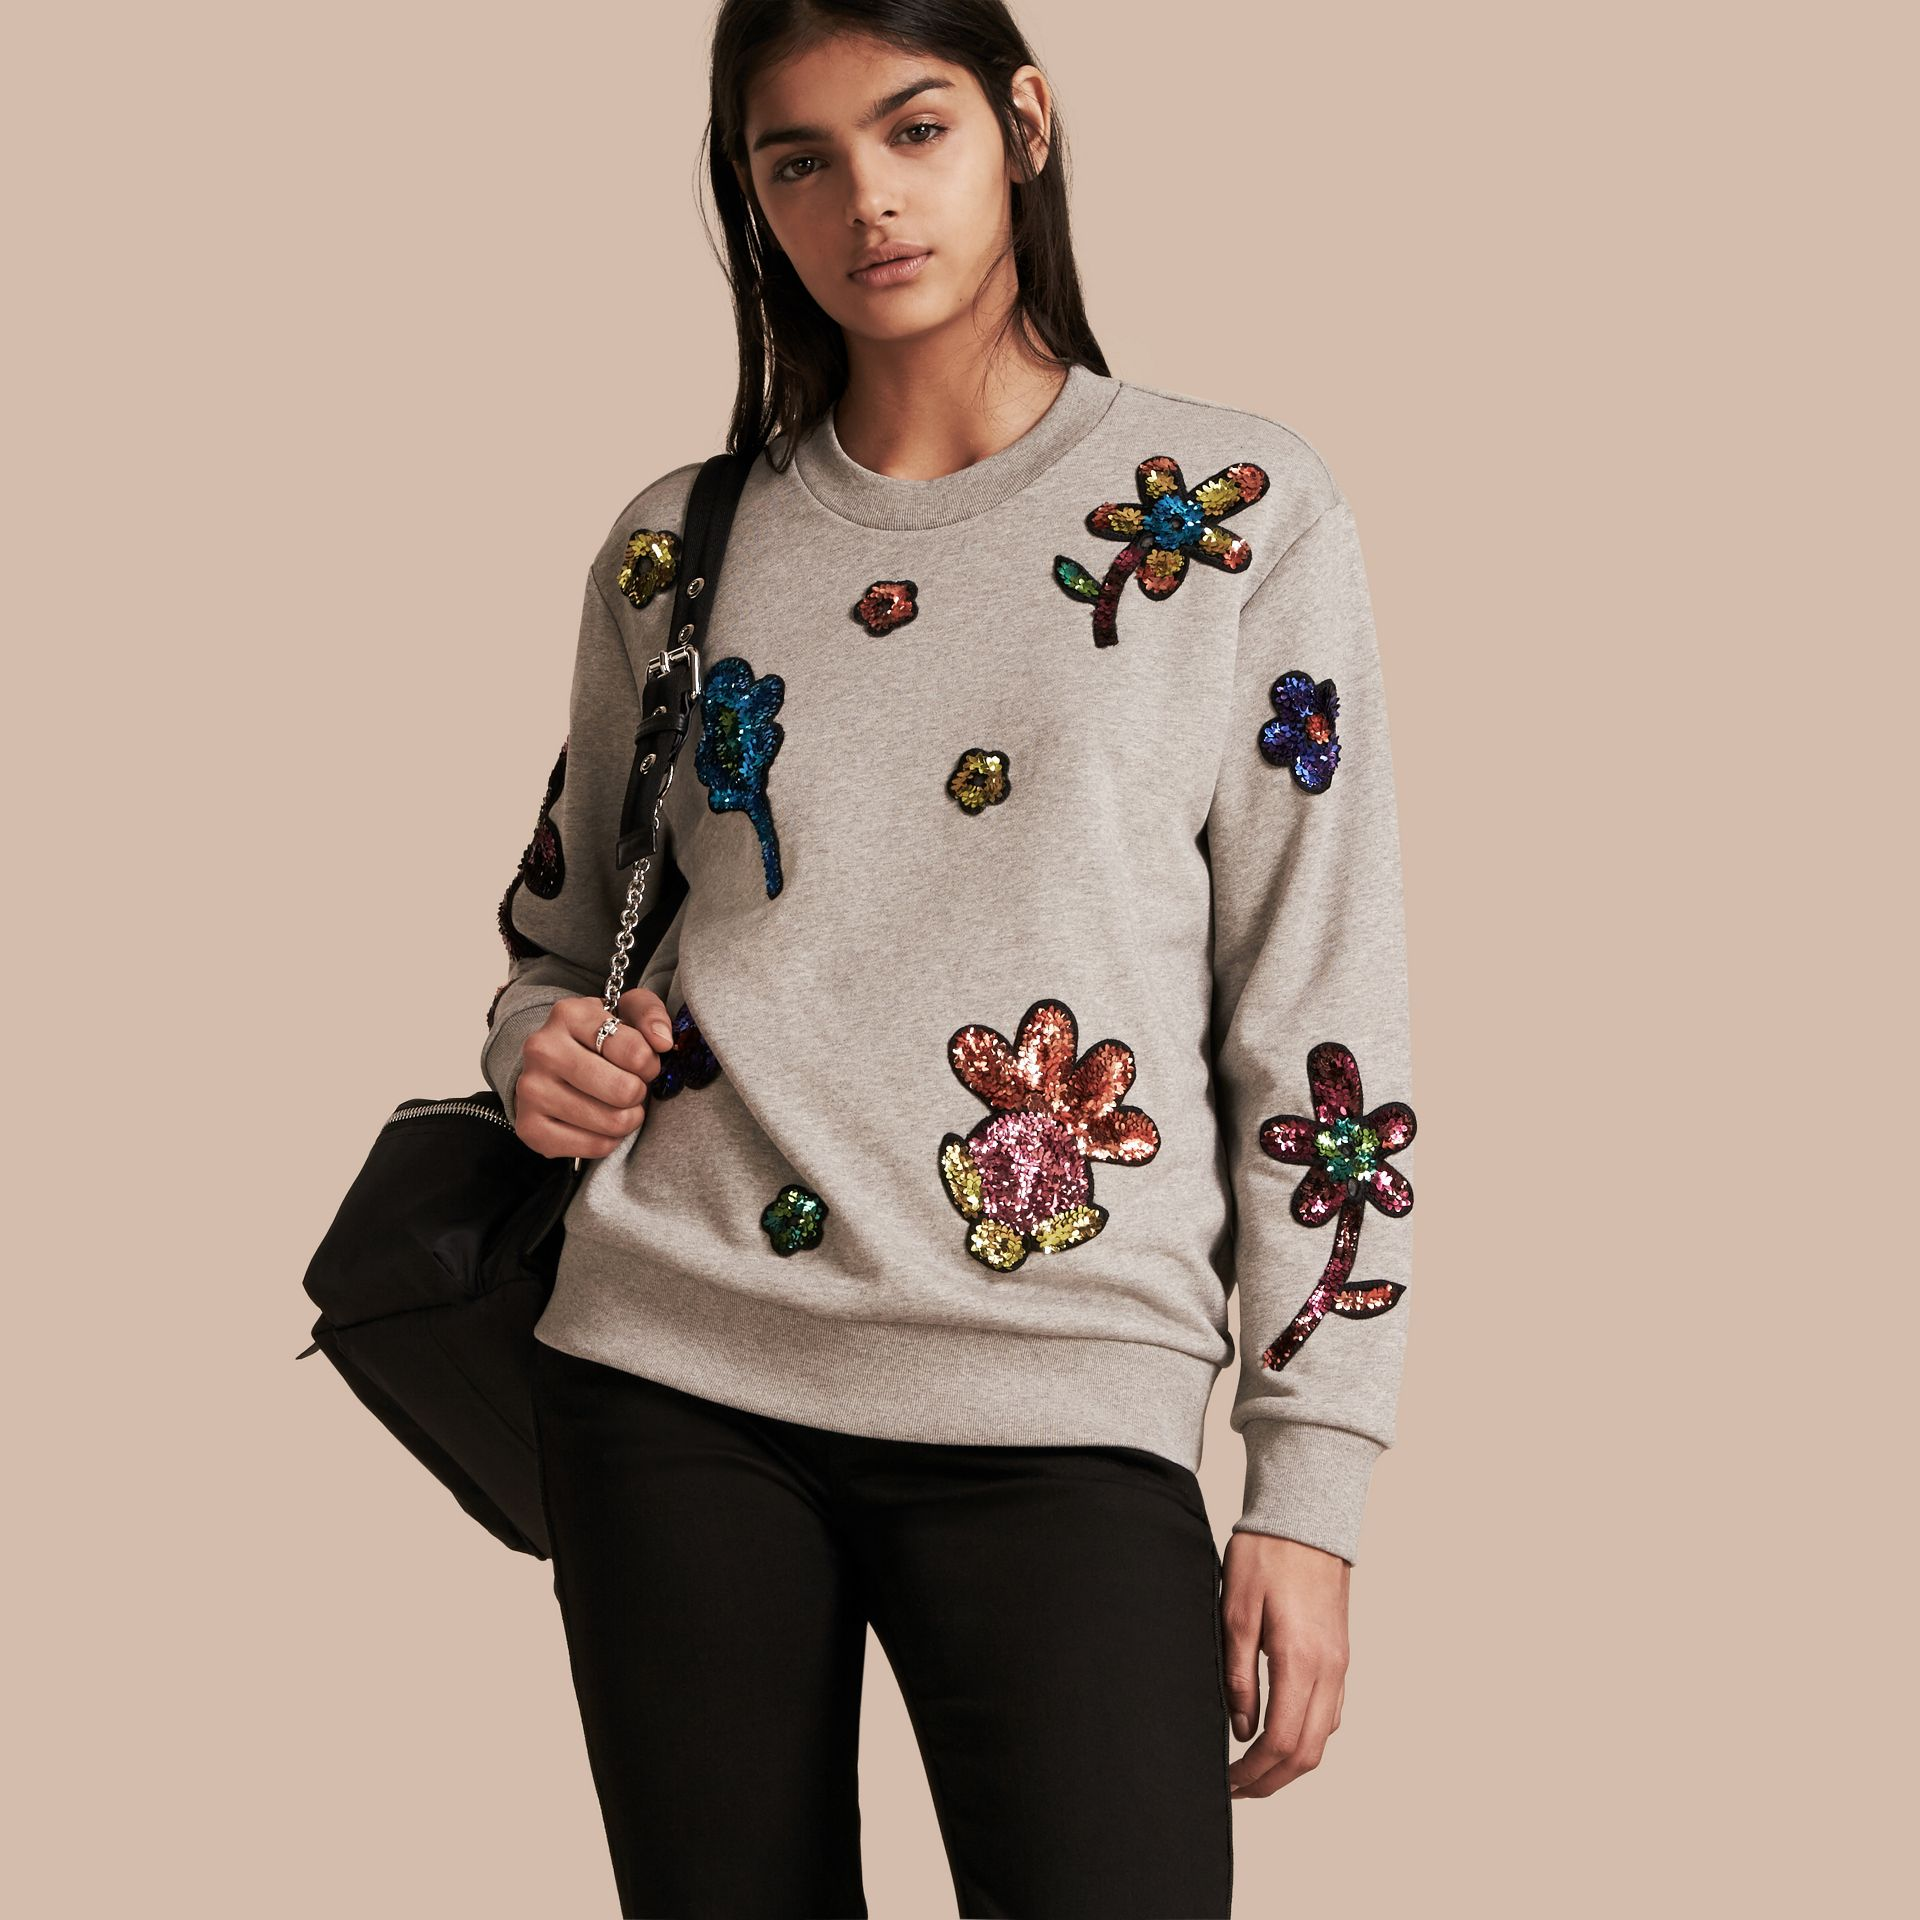 Pale grey melange Sequin Floral Appliqué Cotton Sweatshirt Pale Grey Melange - gallery image 1